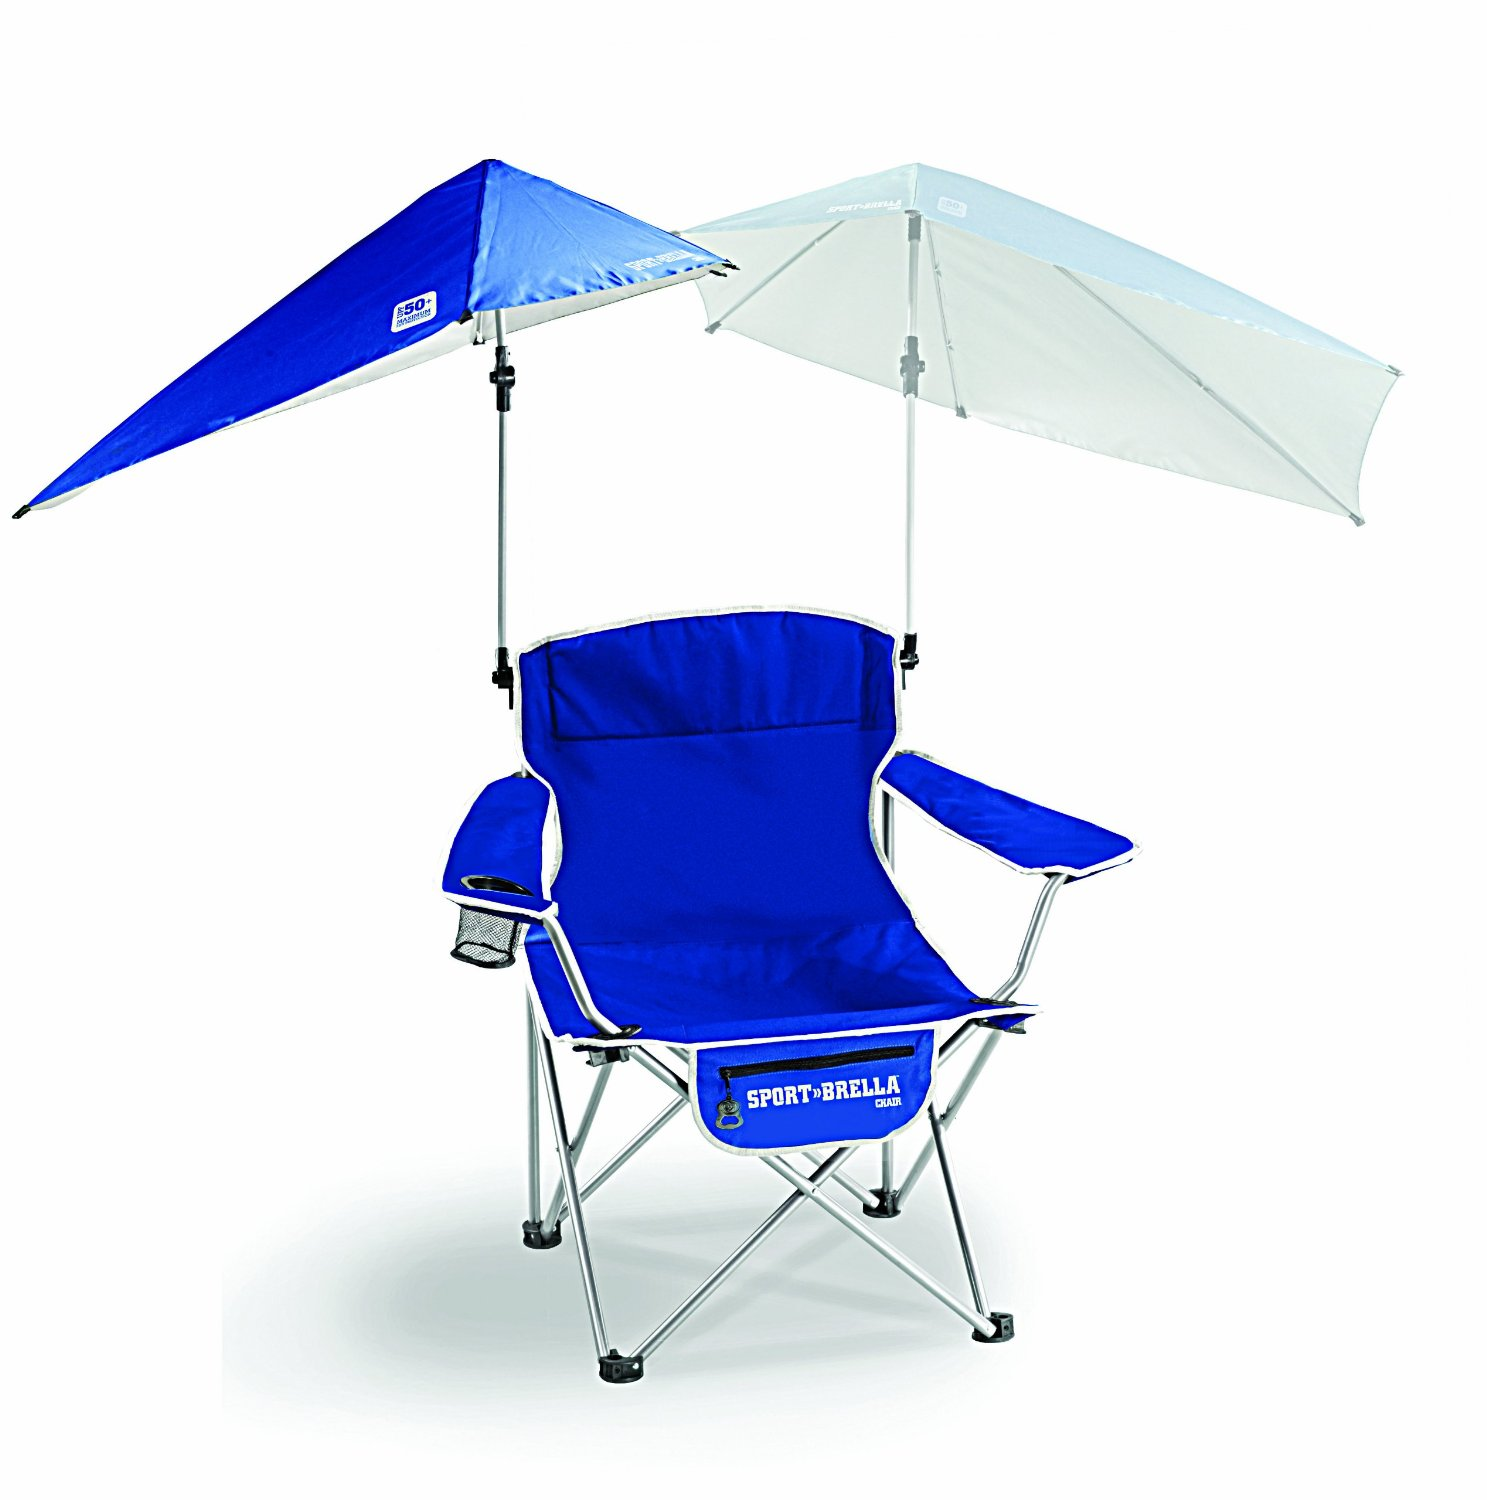 Sport Brella Umbrella Chair 360 Degree Sun Protection